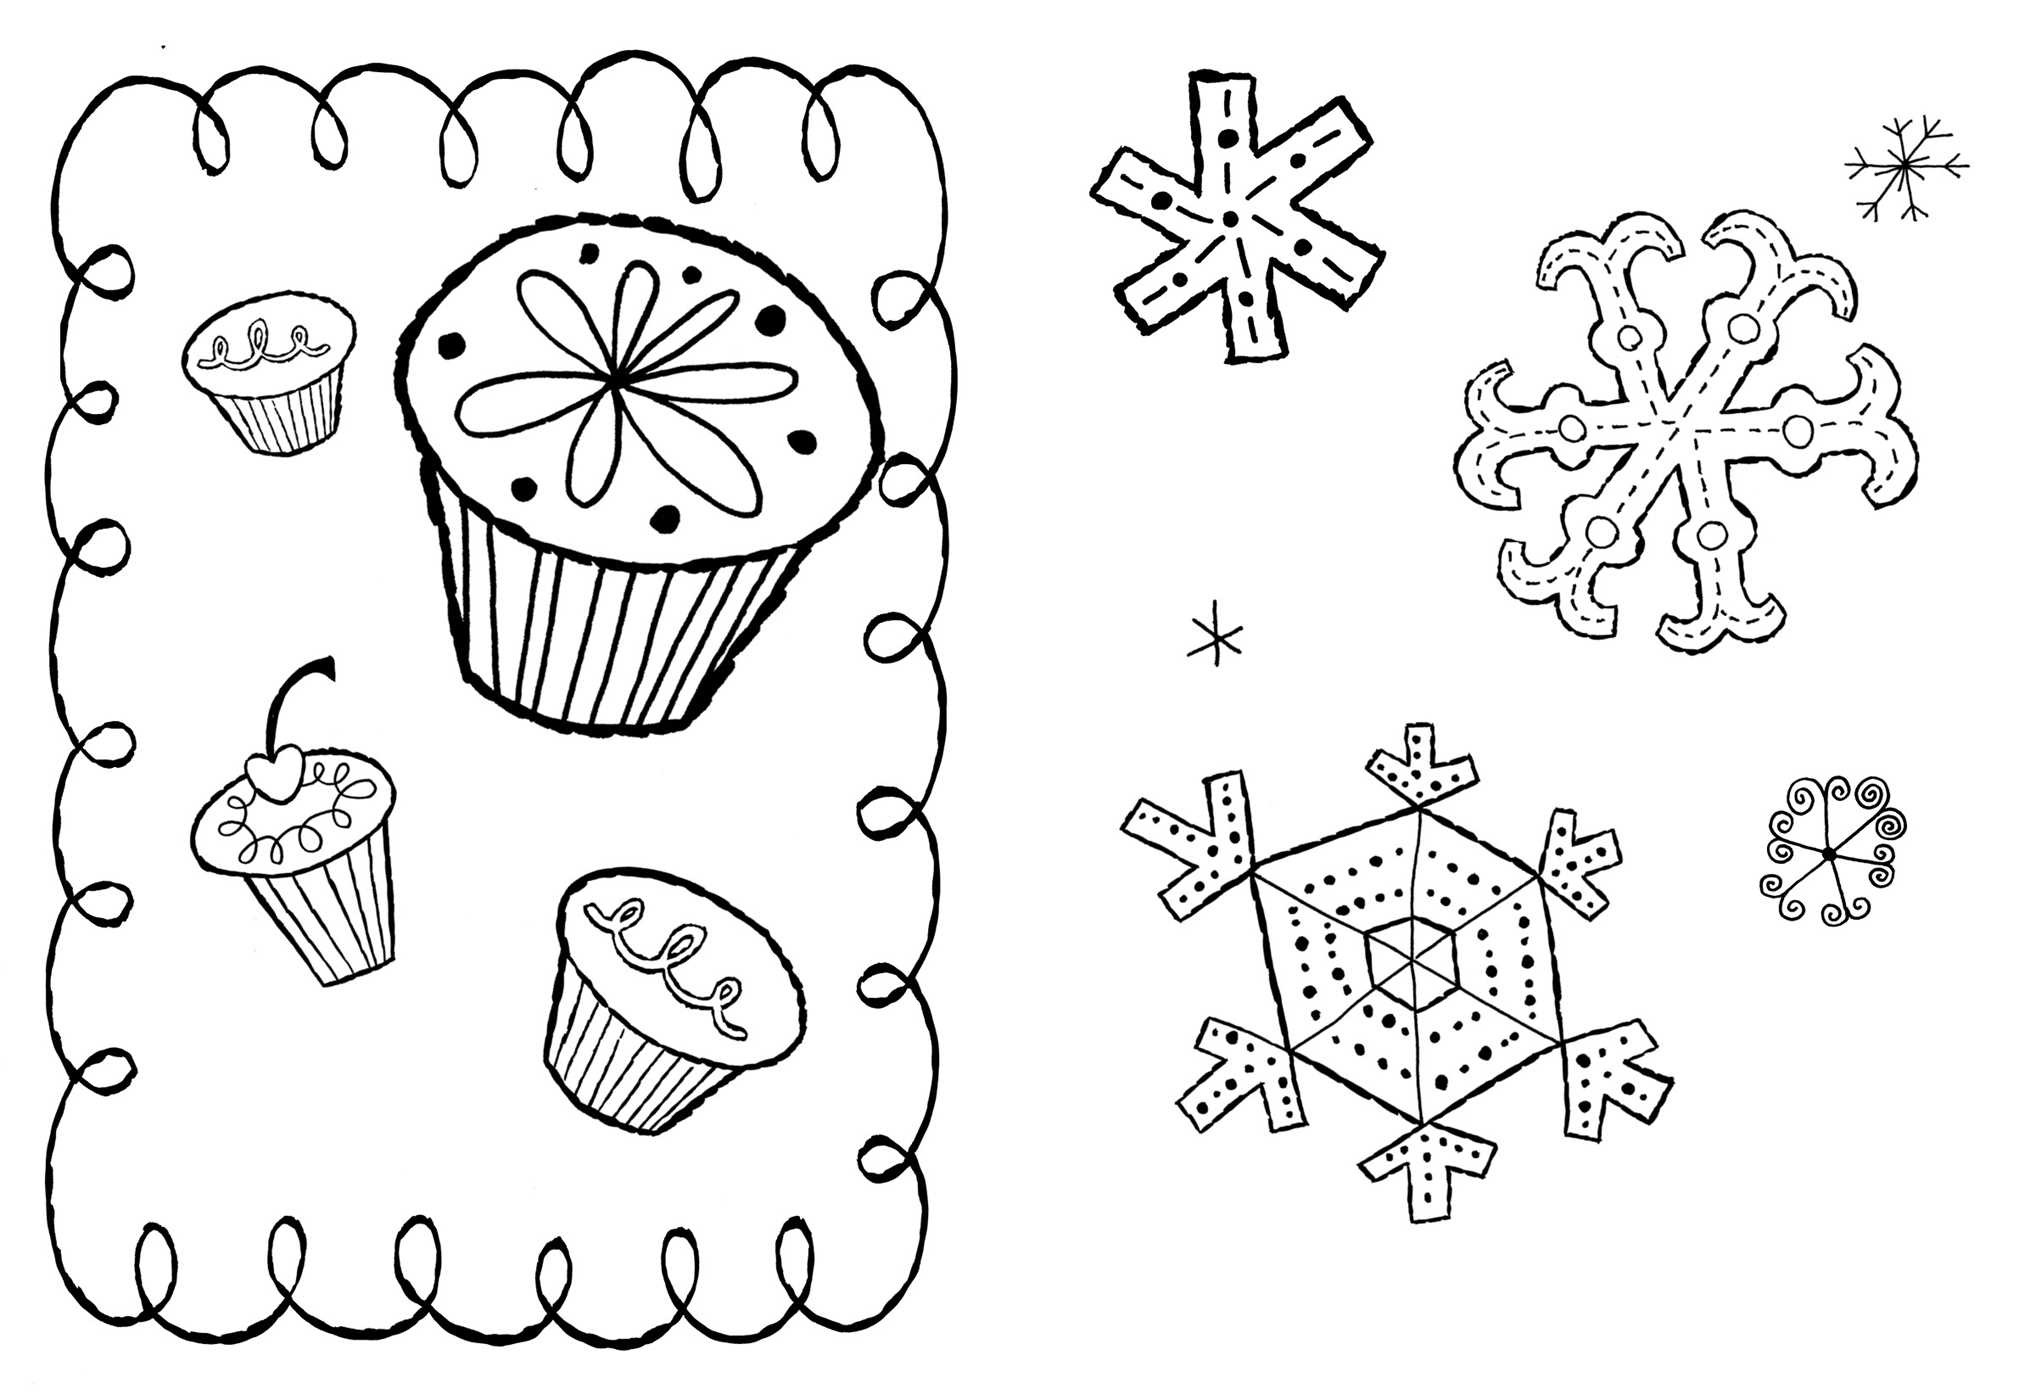 Dream doodle draw gift set 9781481471596.in02